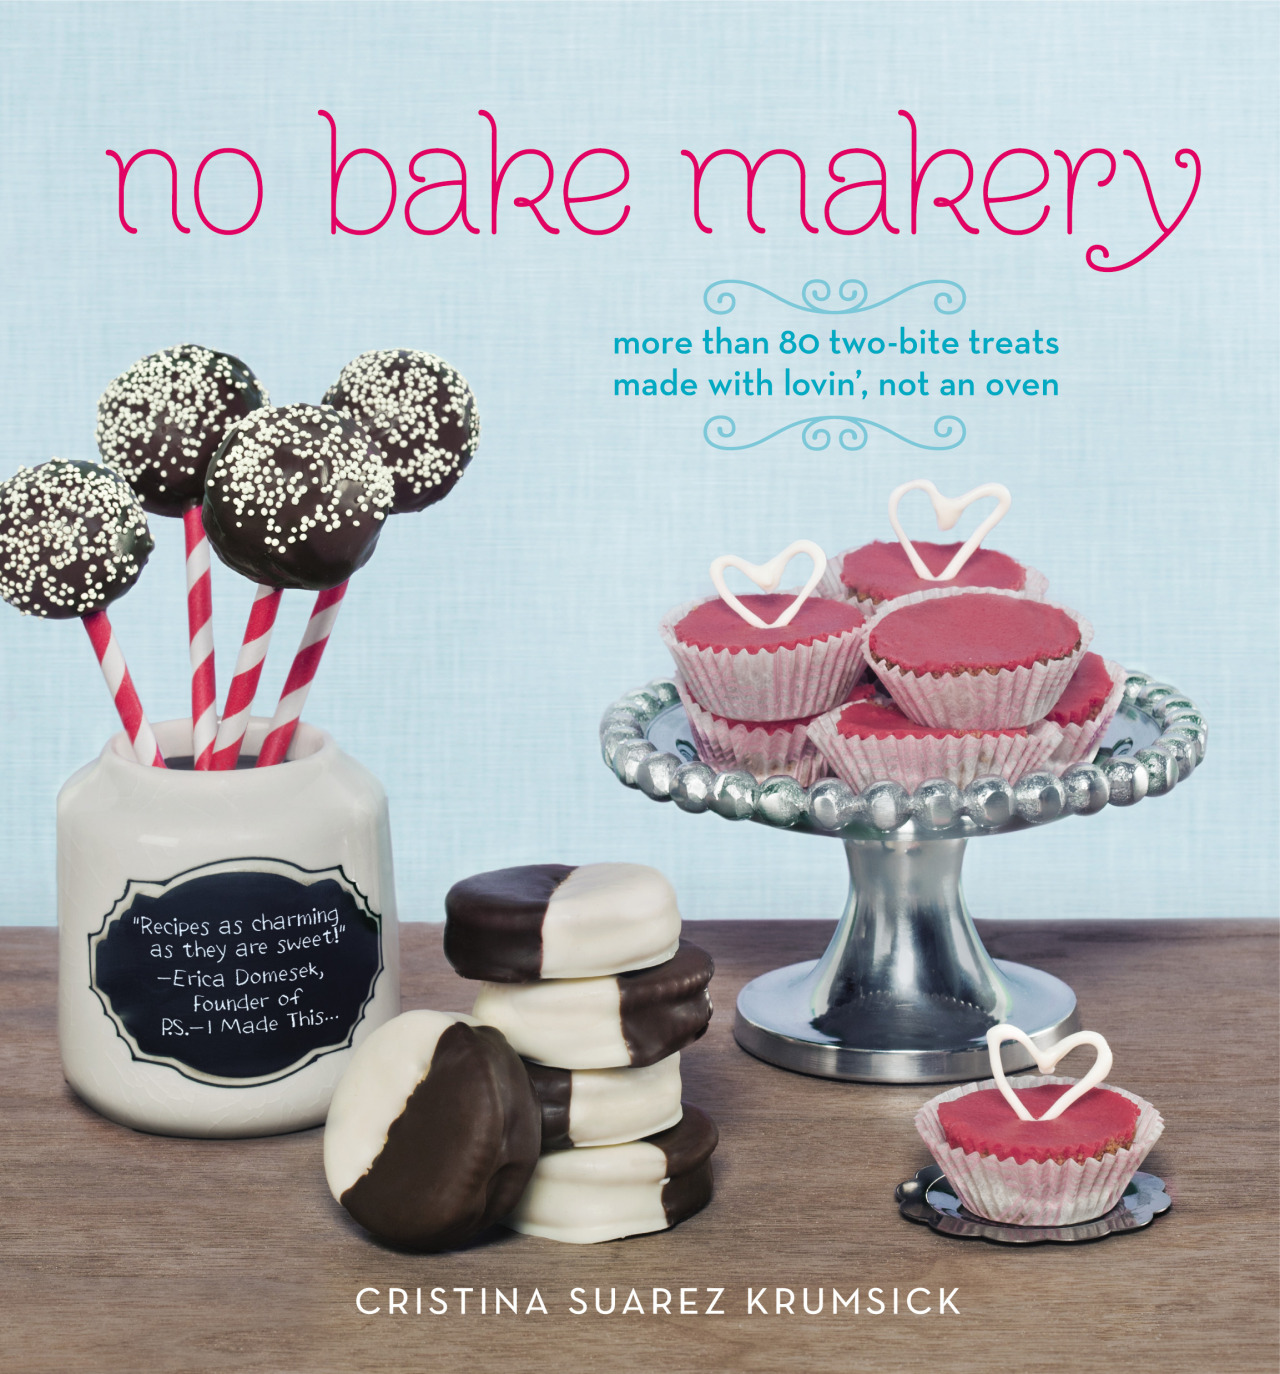 'No Bake Makery' GiveawayWe're giving away FIVE copies of NO BAKE MAKERY. An adorable cookbook full of treats that are made with lovin', not an oven. Enter for a chance to win.a Rafflecopter giveaway